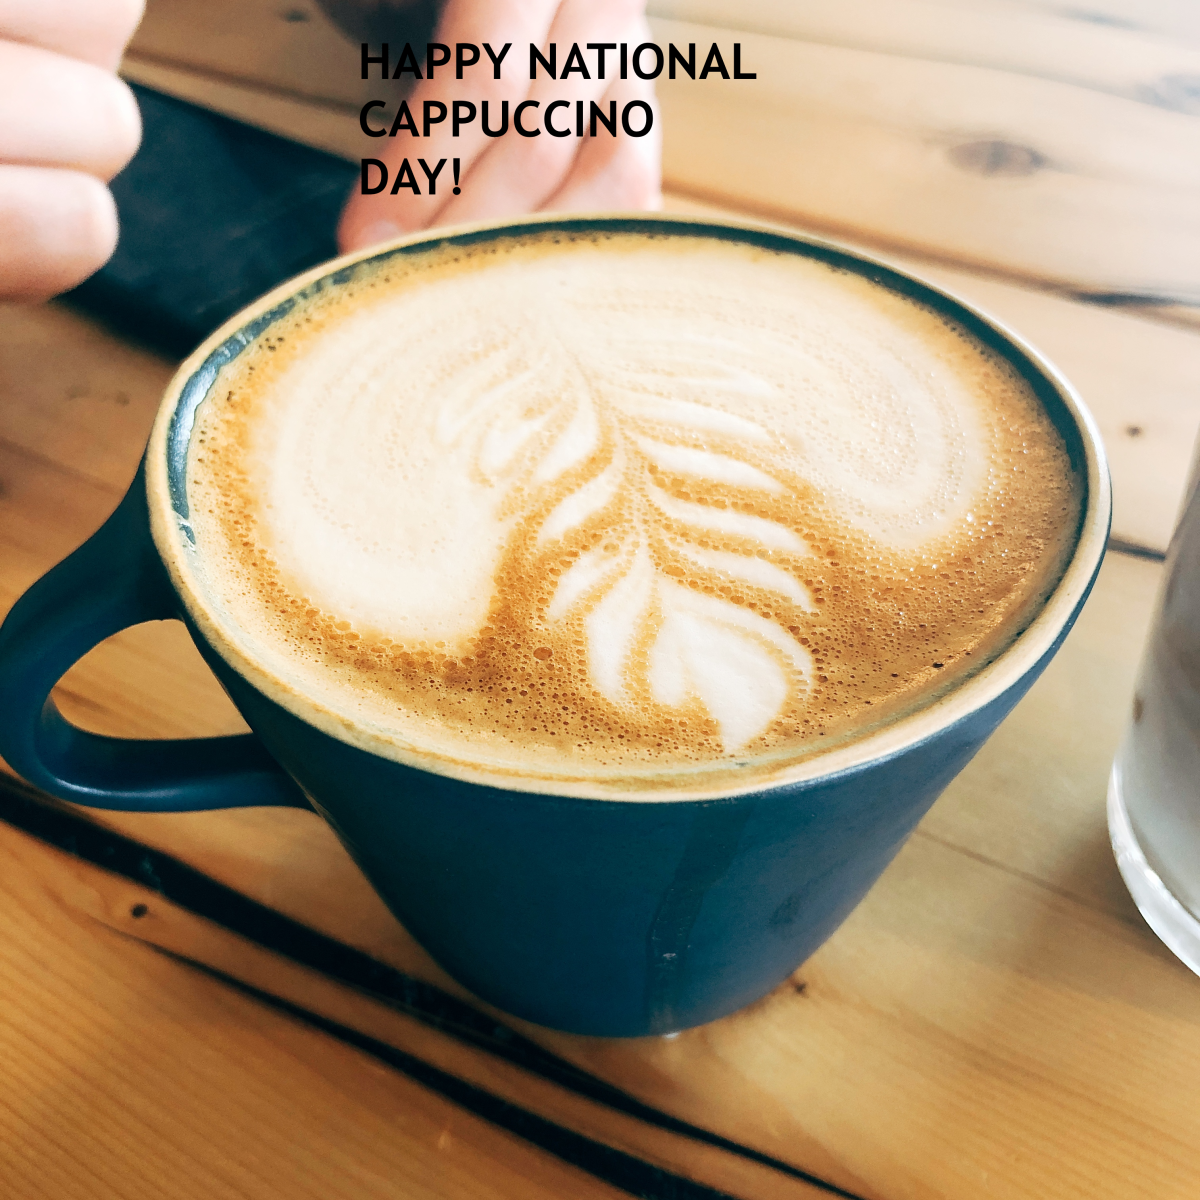 National Cappuccino Day is celebrated on November 8th in the US.